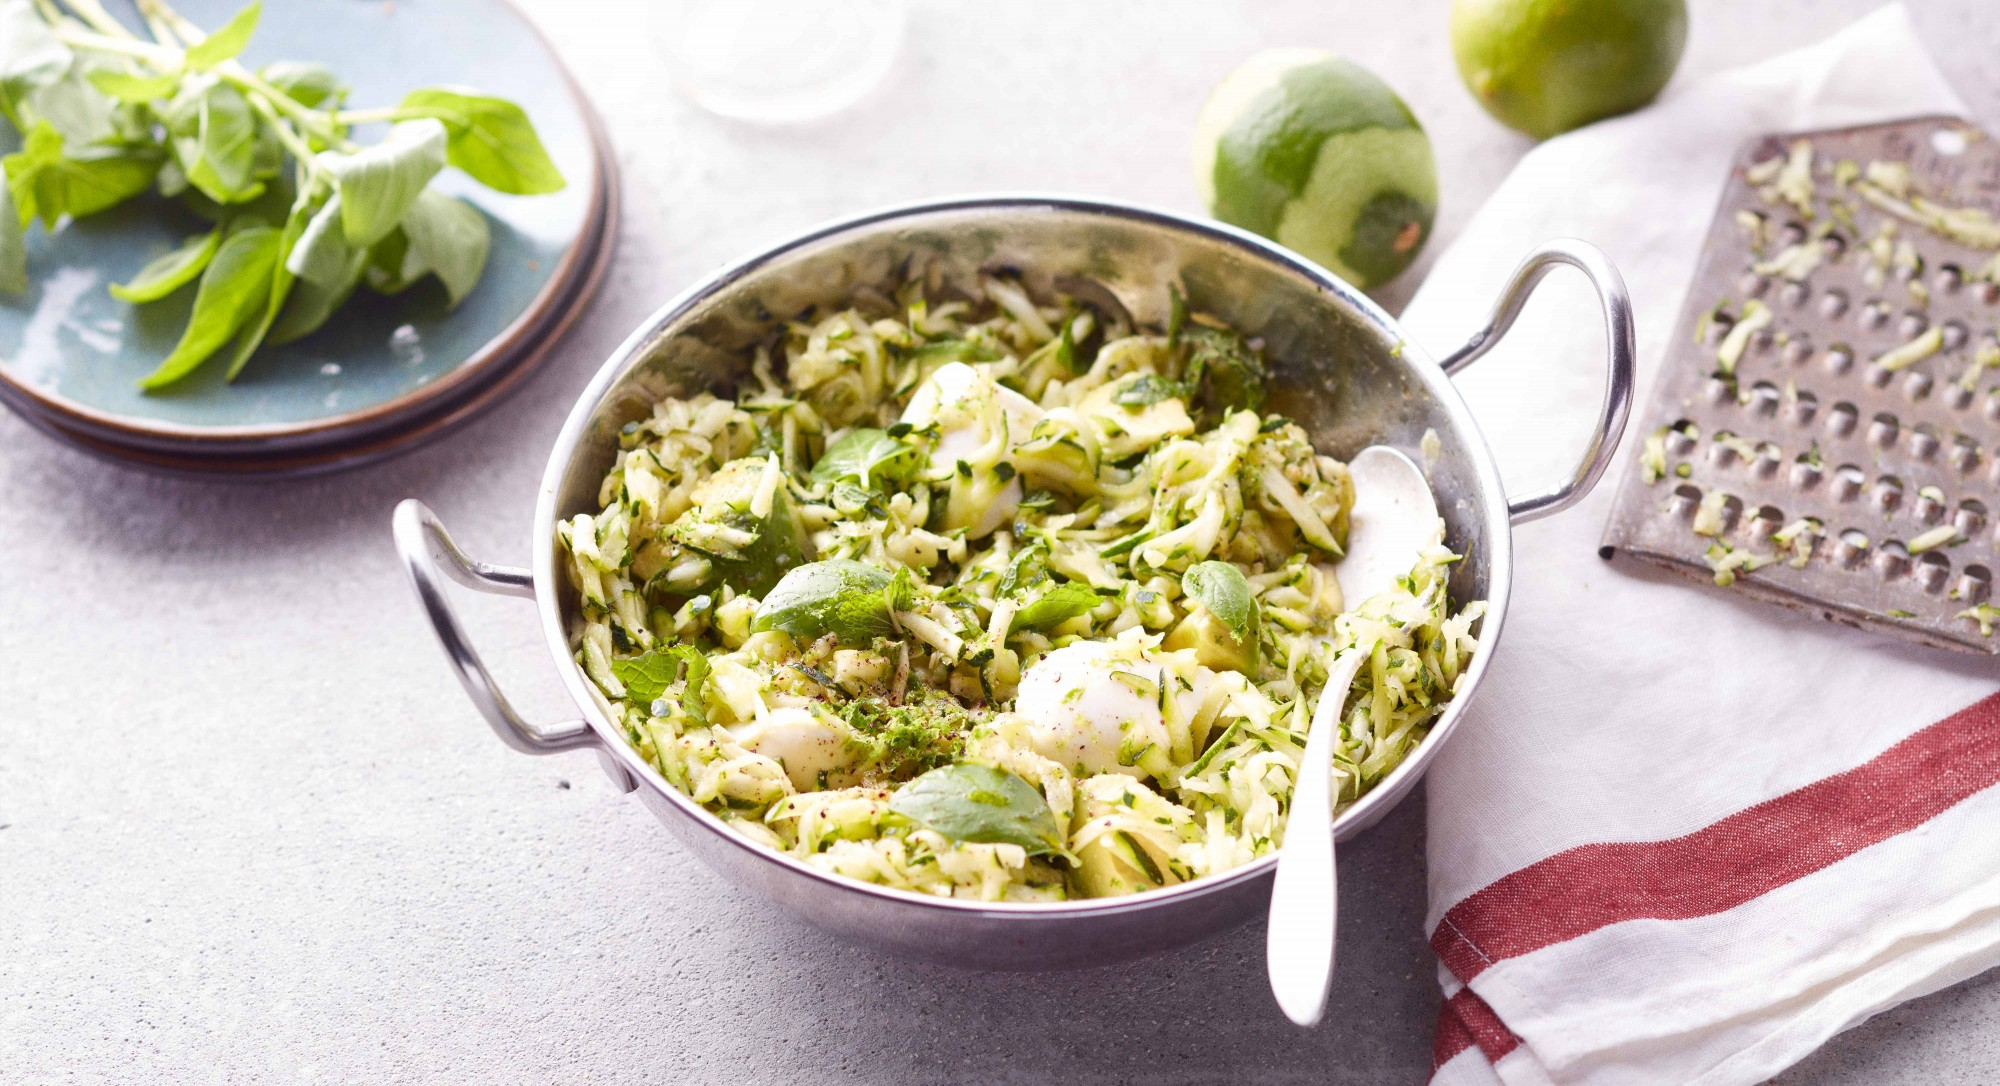 Brush for the stomach - cabbage salad with carrots 95